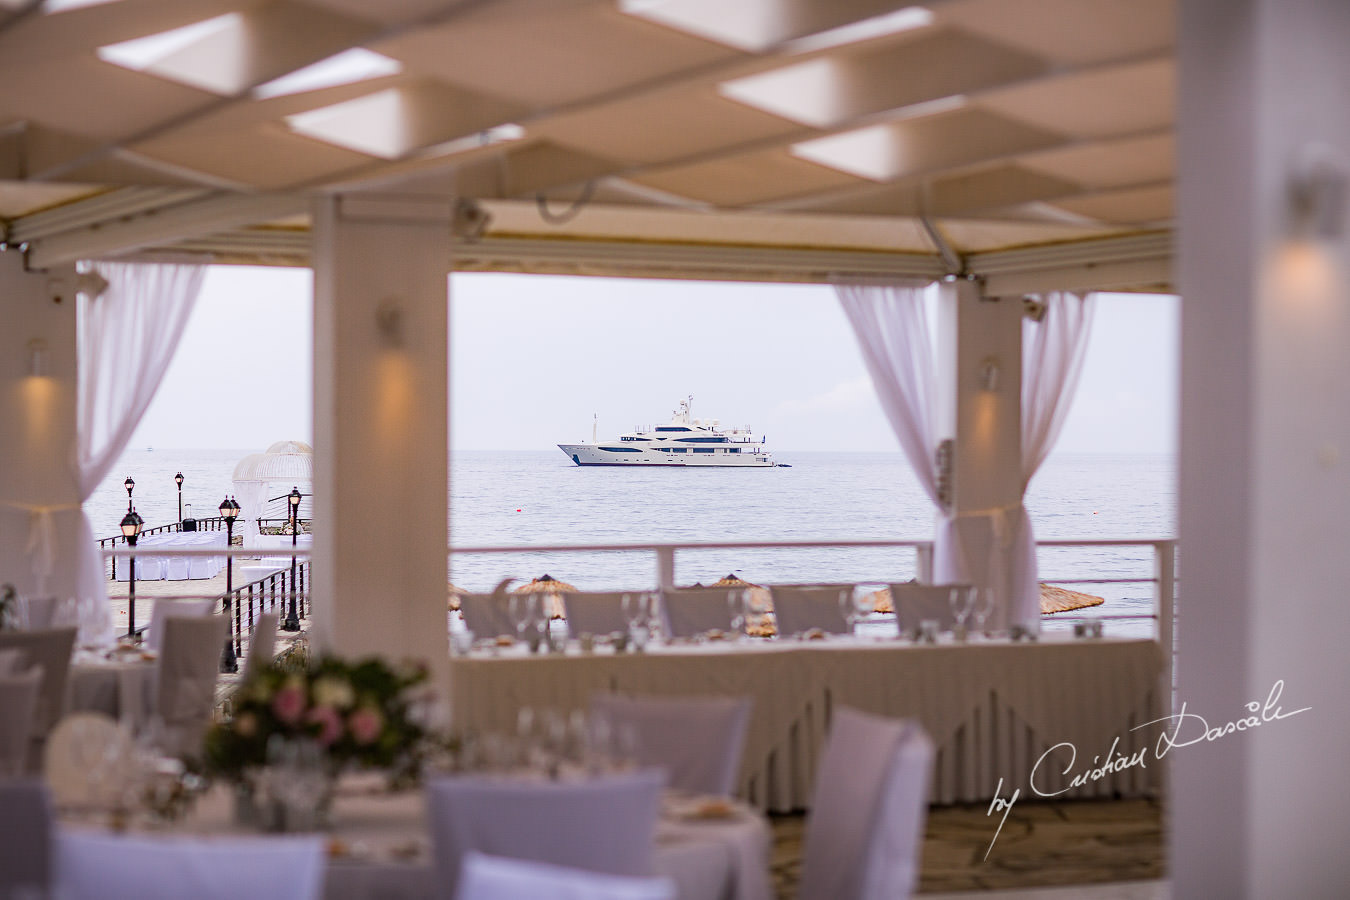 Wedding venue view over the sea during a Beautiful Wedding at Elias Beach Hotel captured by Cyprus Photographer Cristian Dascalu.